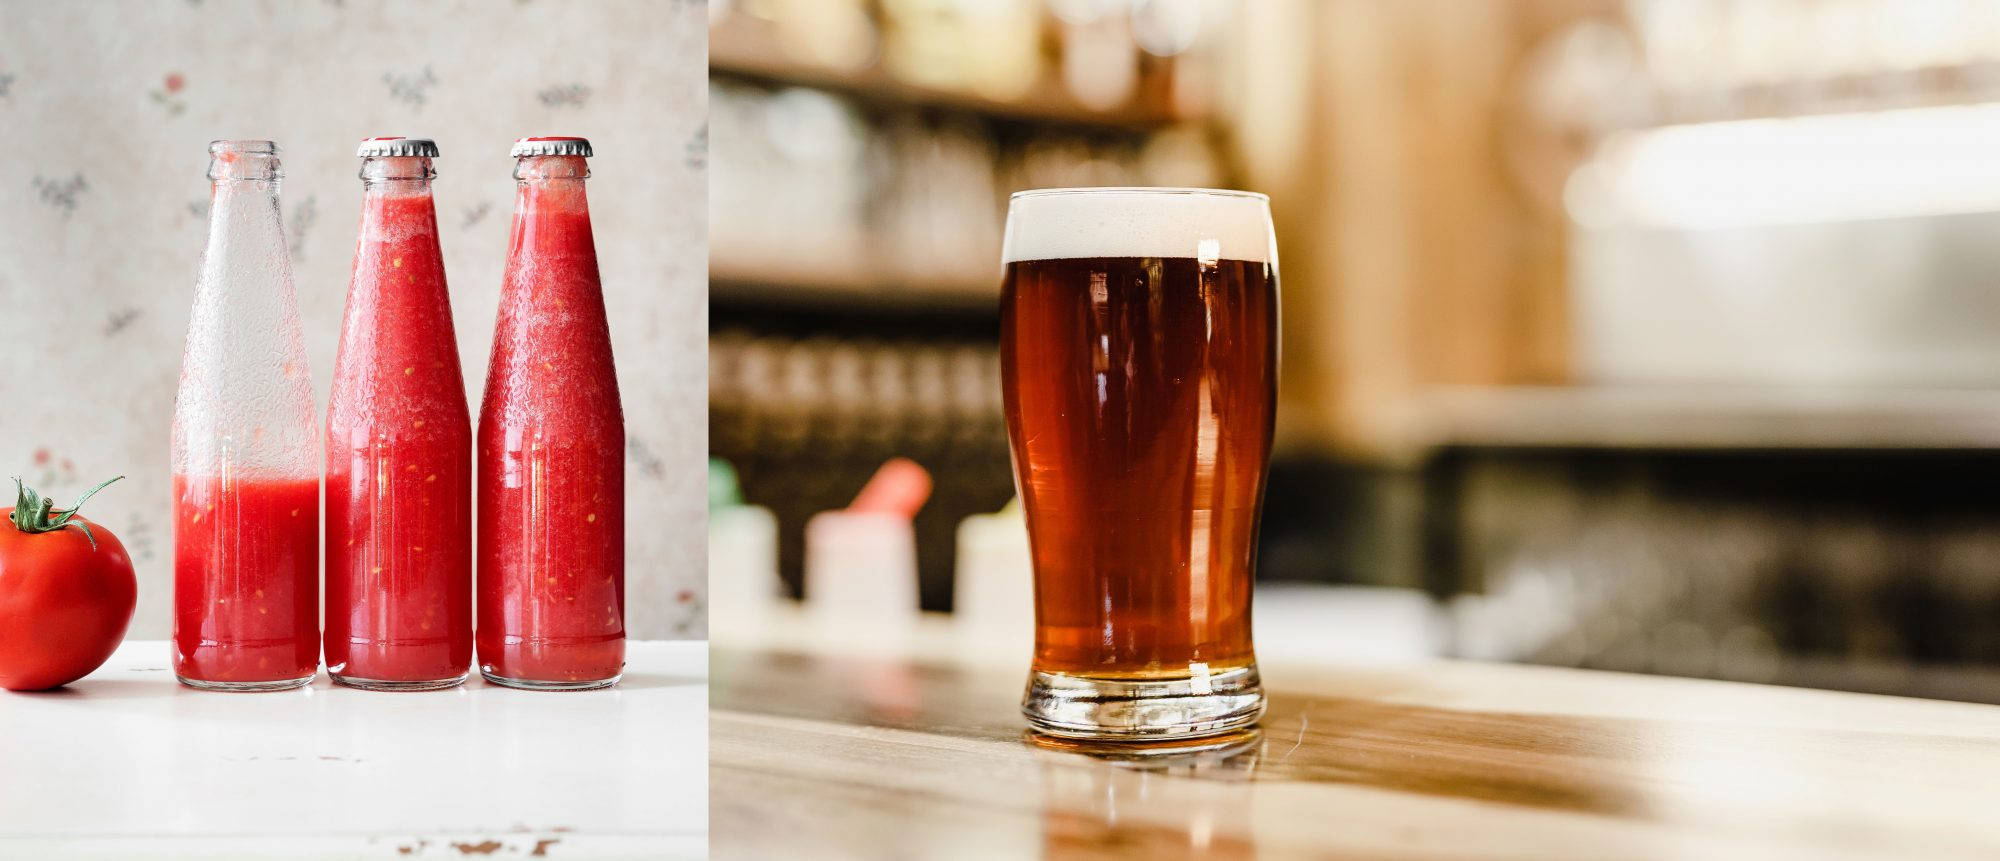 Bottles of Tomato Juice and a Glass of Beer